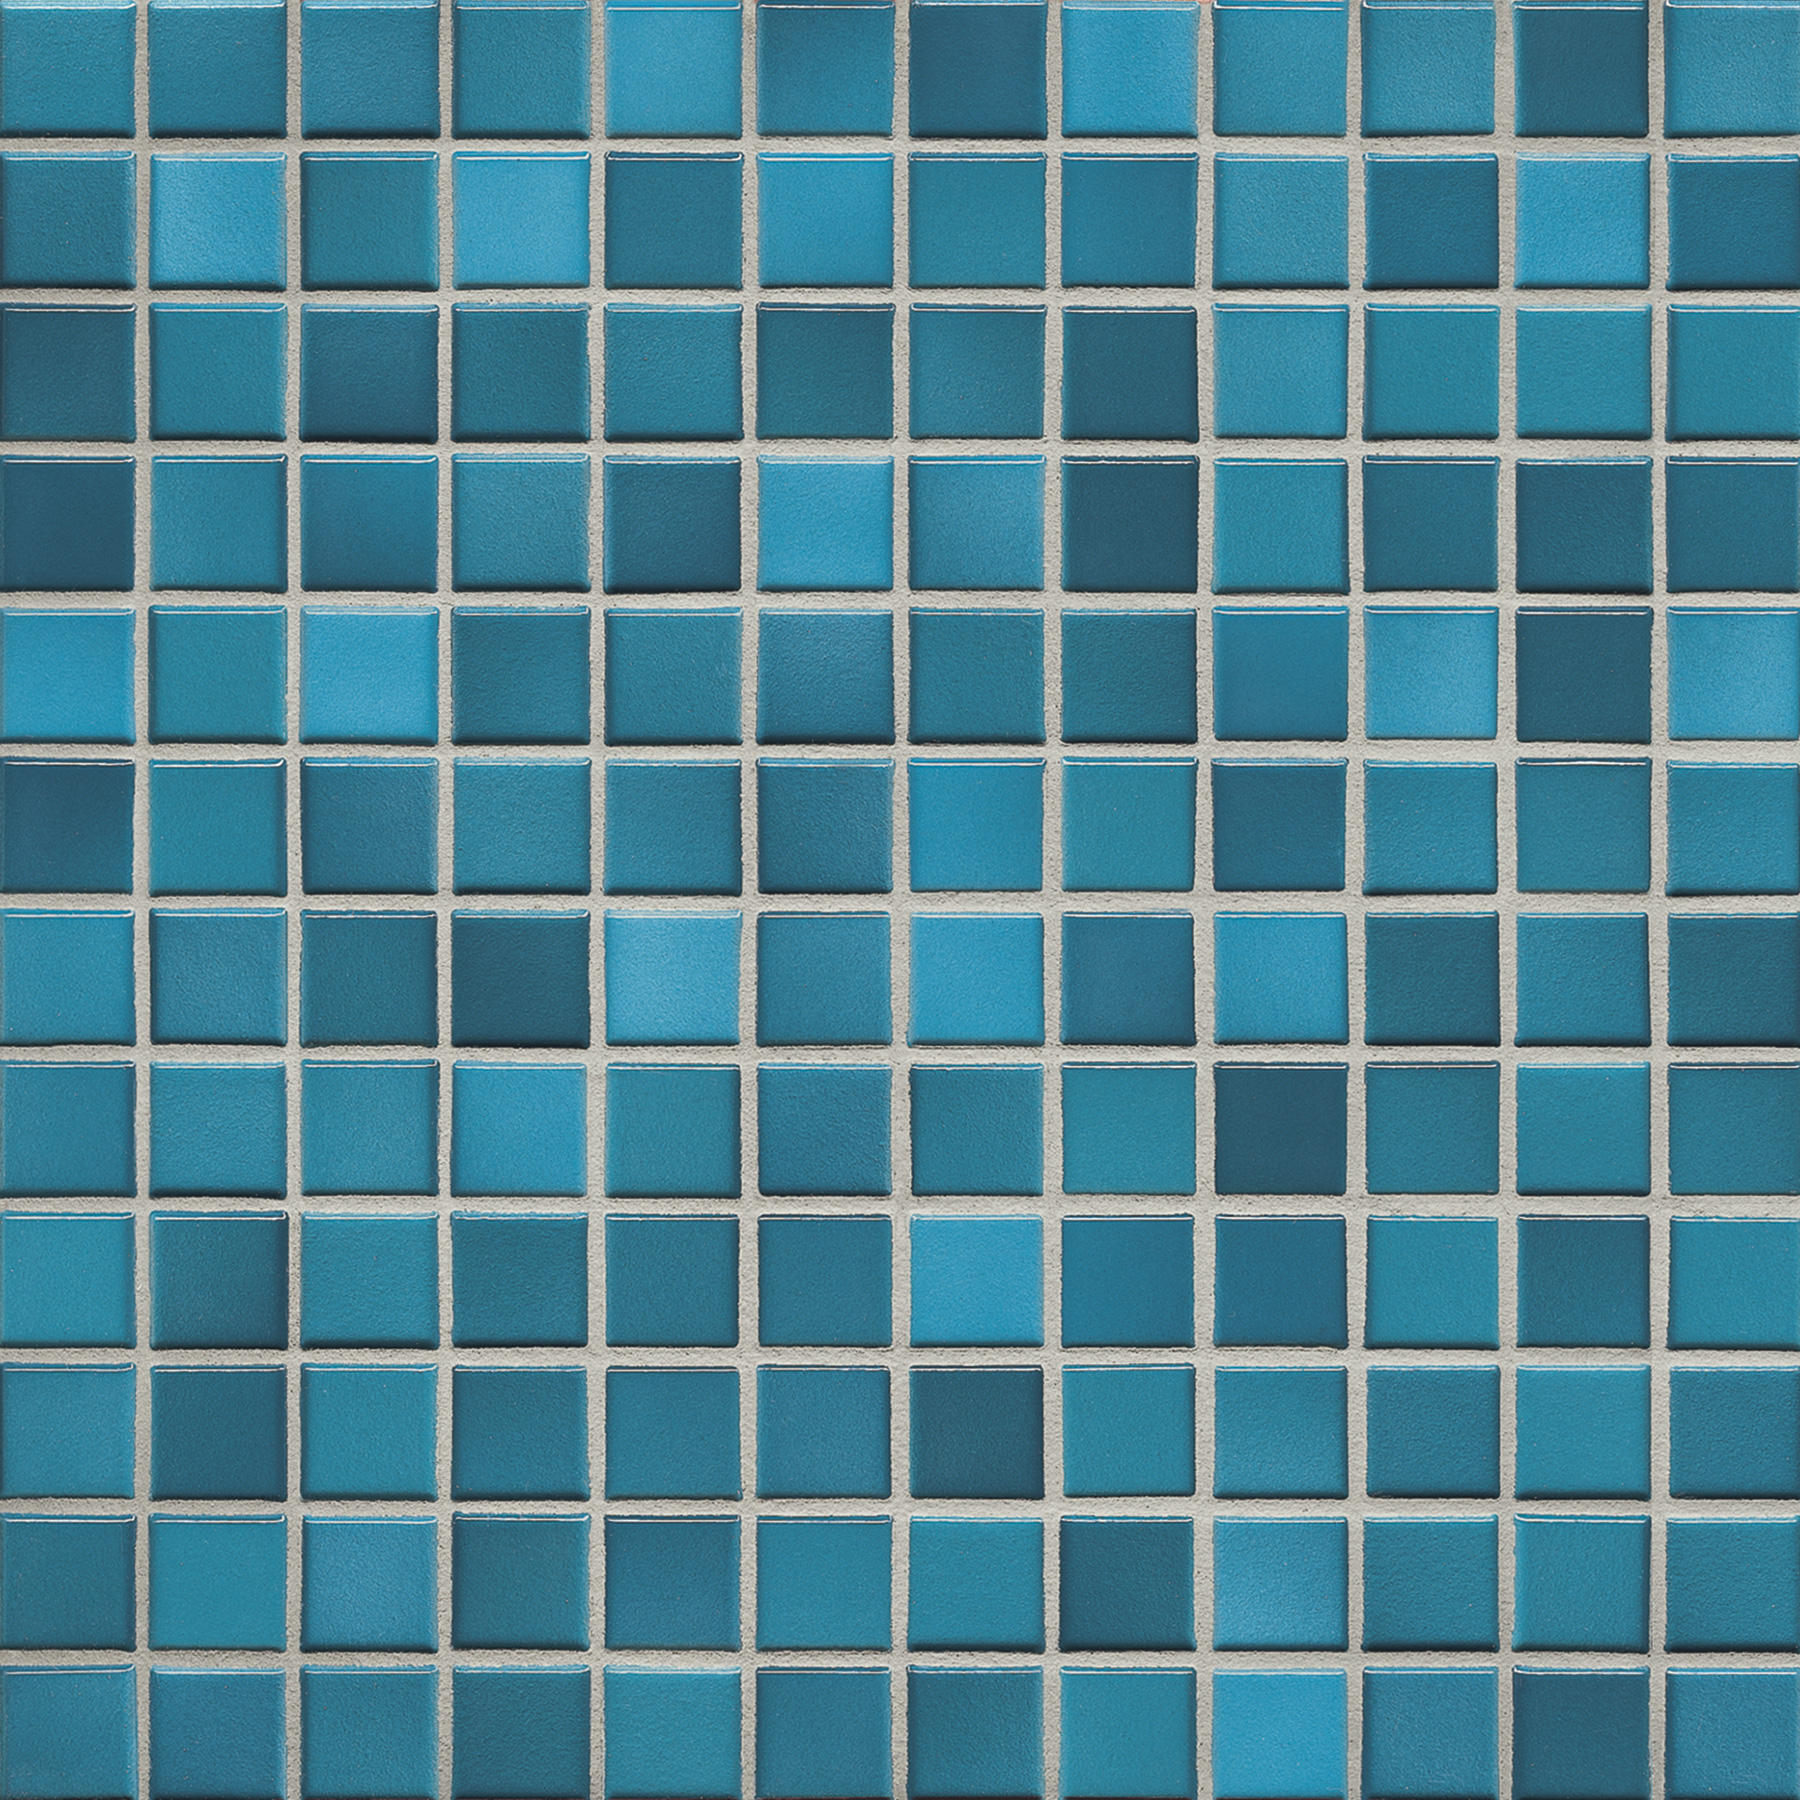 Jasba FRESH pacific blue mix glossy 24x24x6,5 mm 41208H